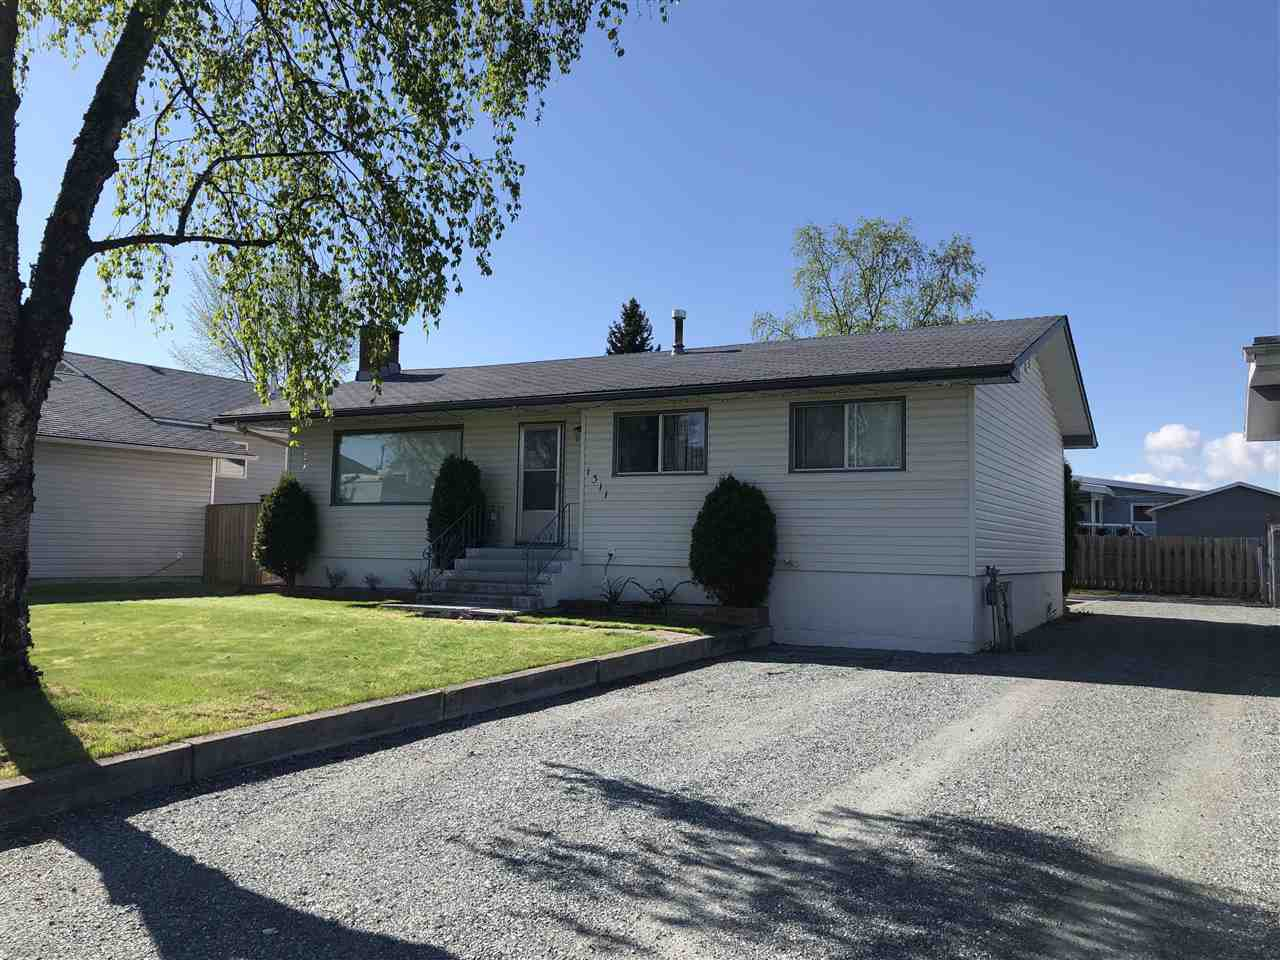 Main Photo: 1311 KELLOGG Avenue in Prince George: Spruceland House for sale (PG City West (Zone 71))  : MLS®# R2457521